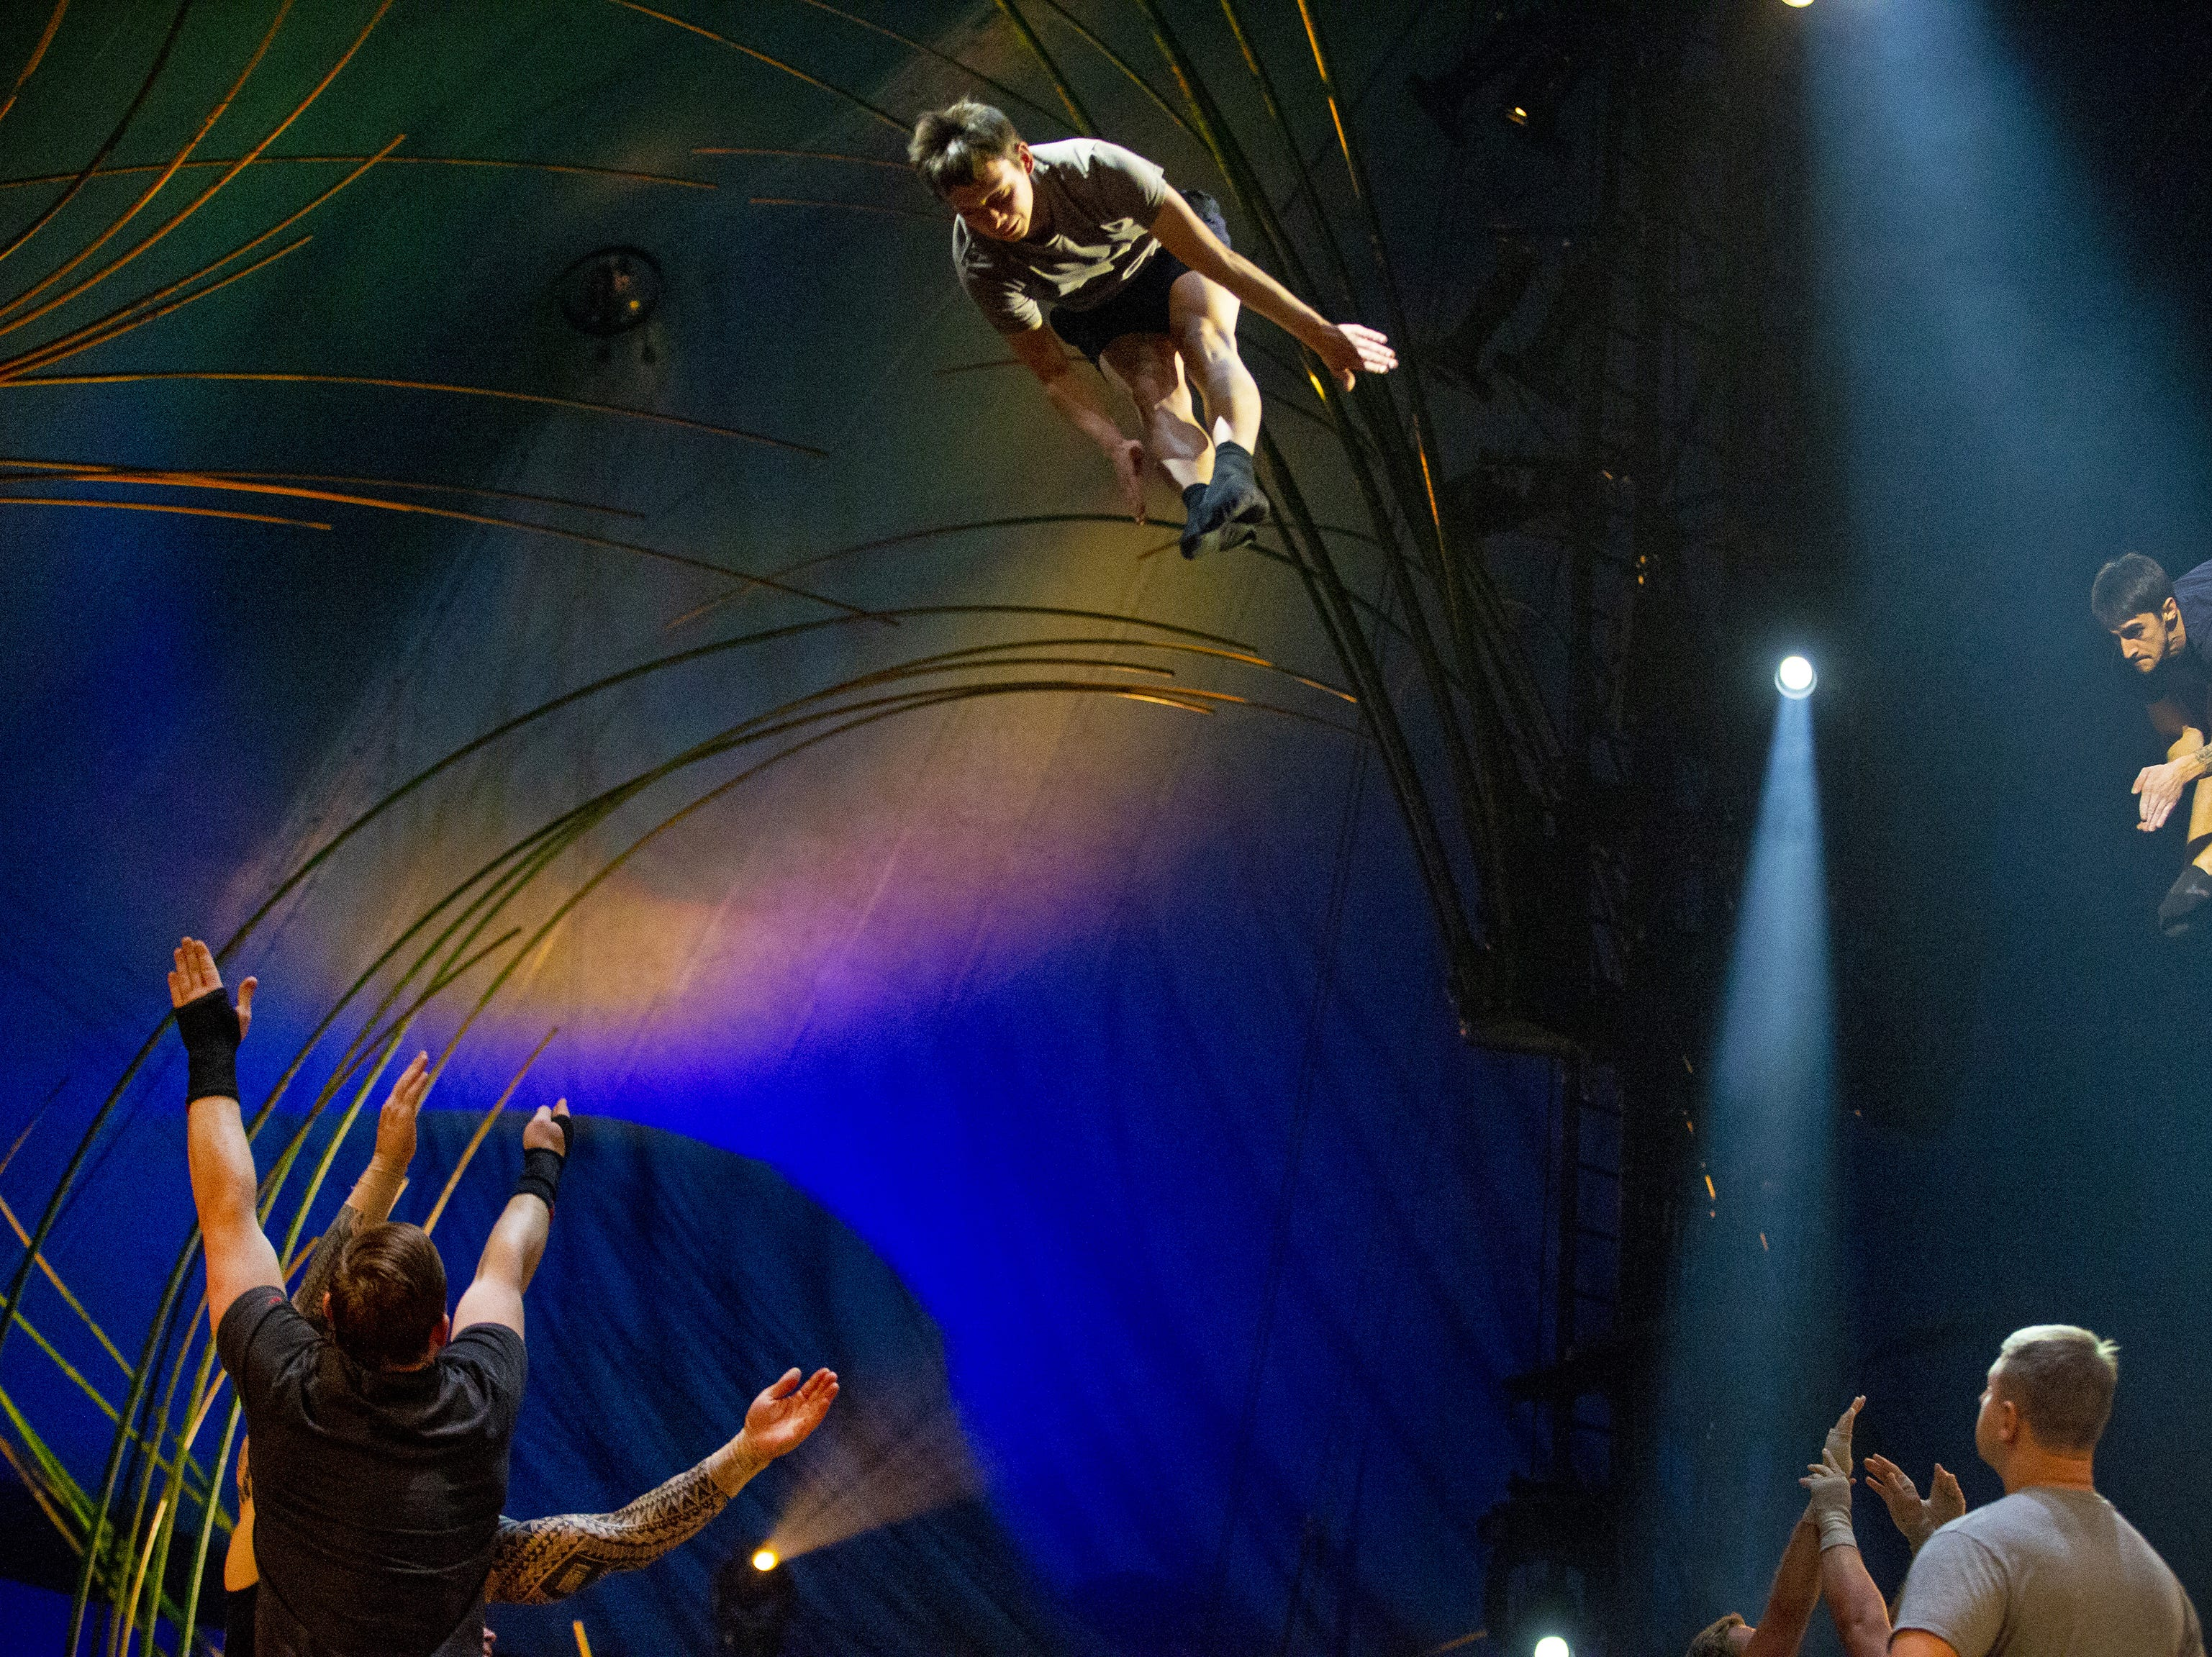 Behind the scenes of Cirque du Soleil's 'Amaluna'